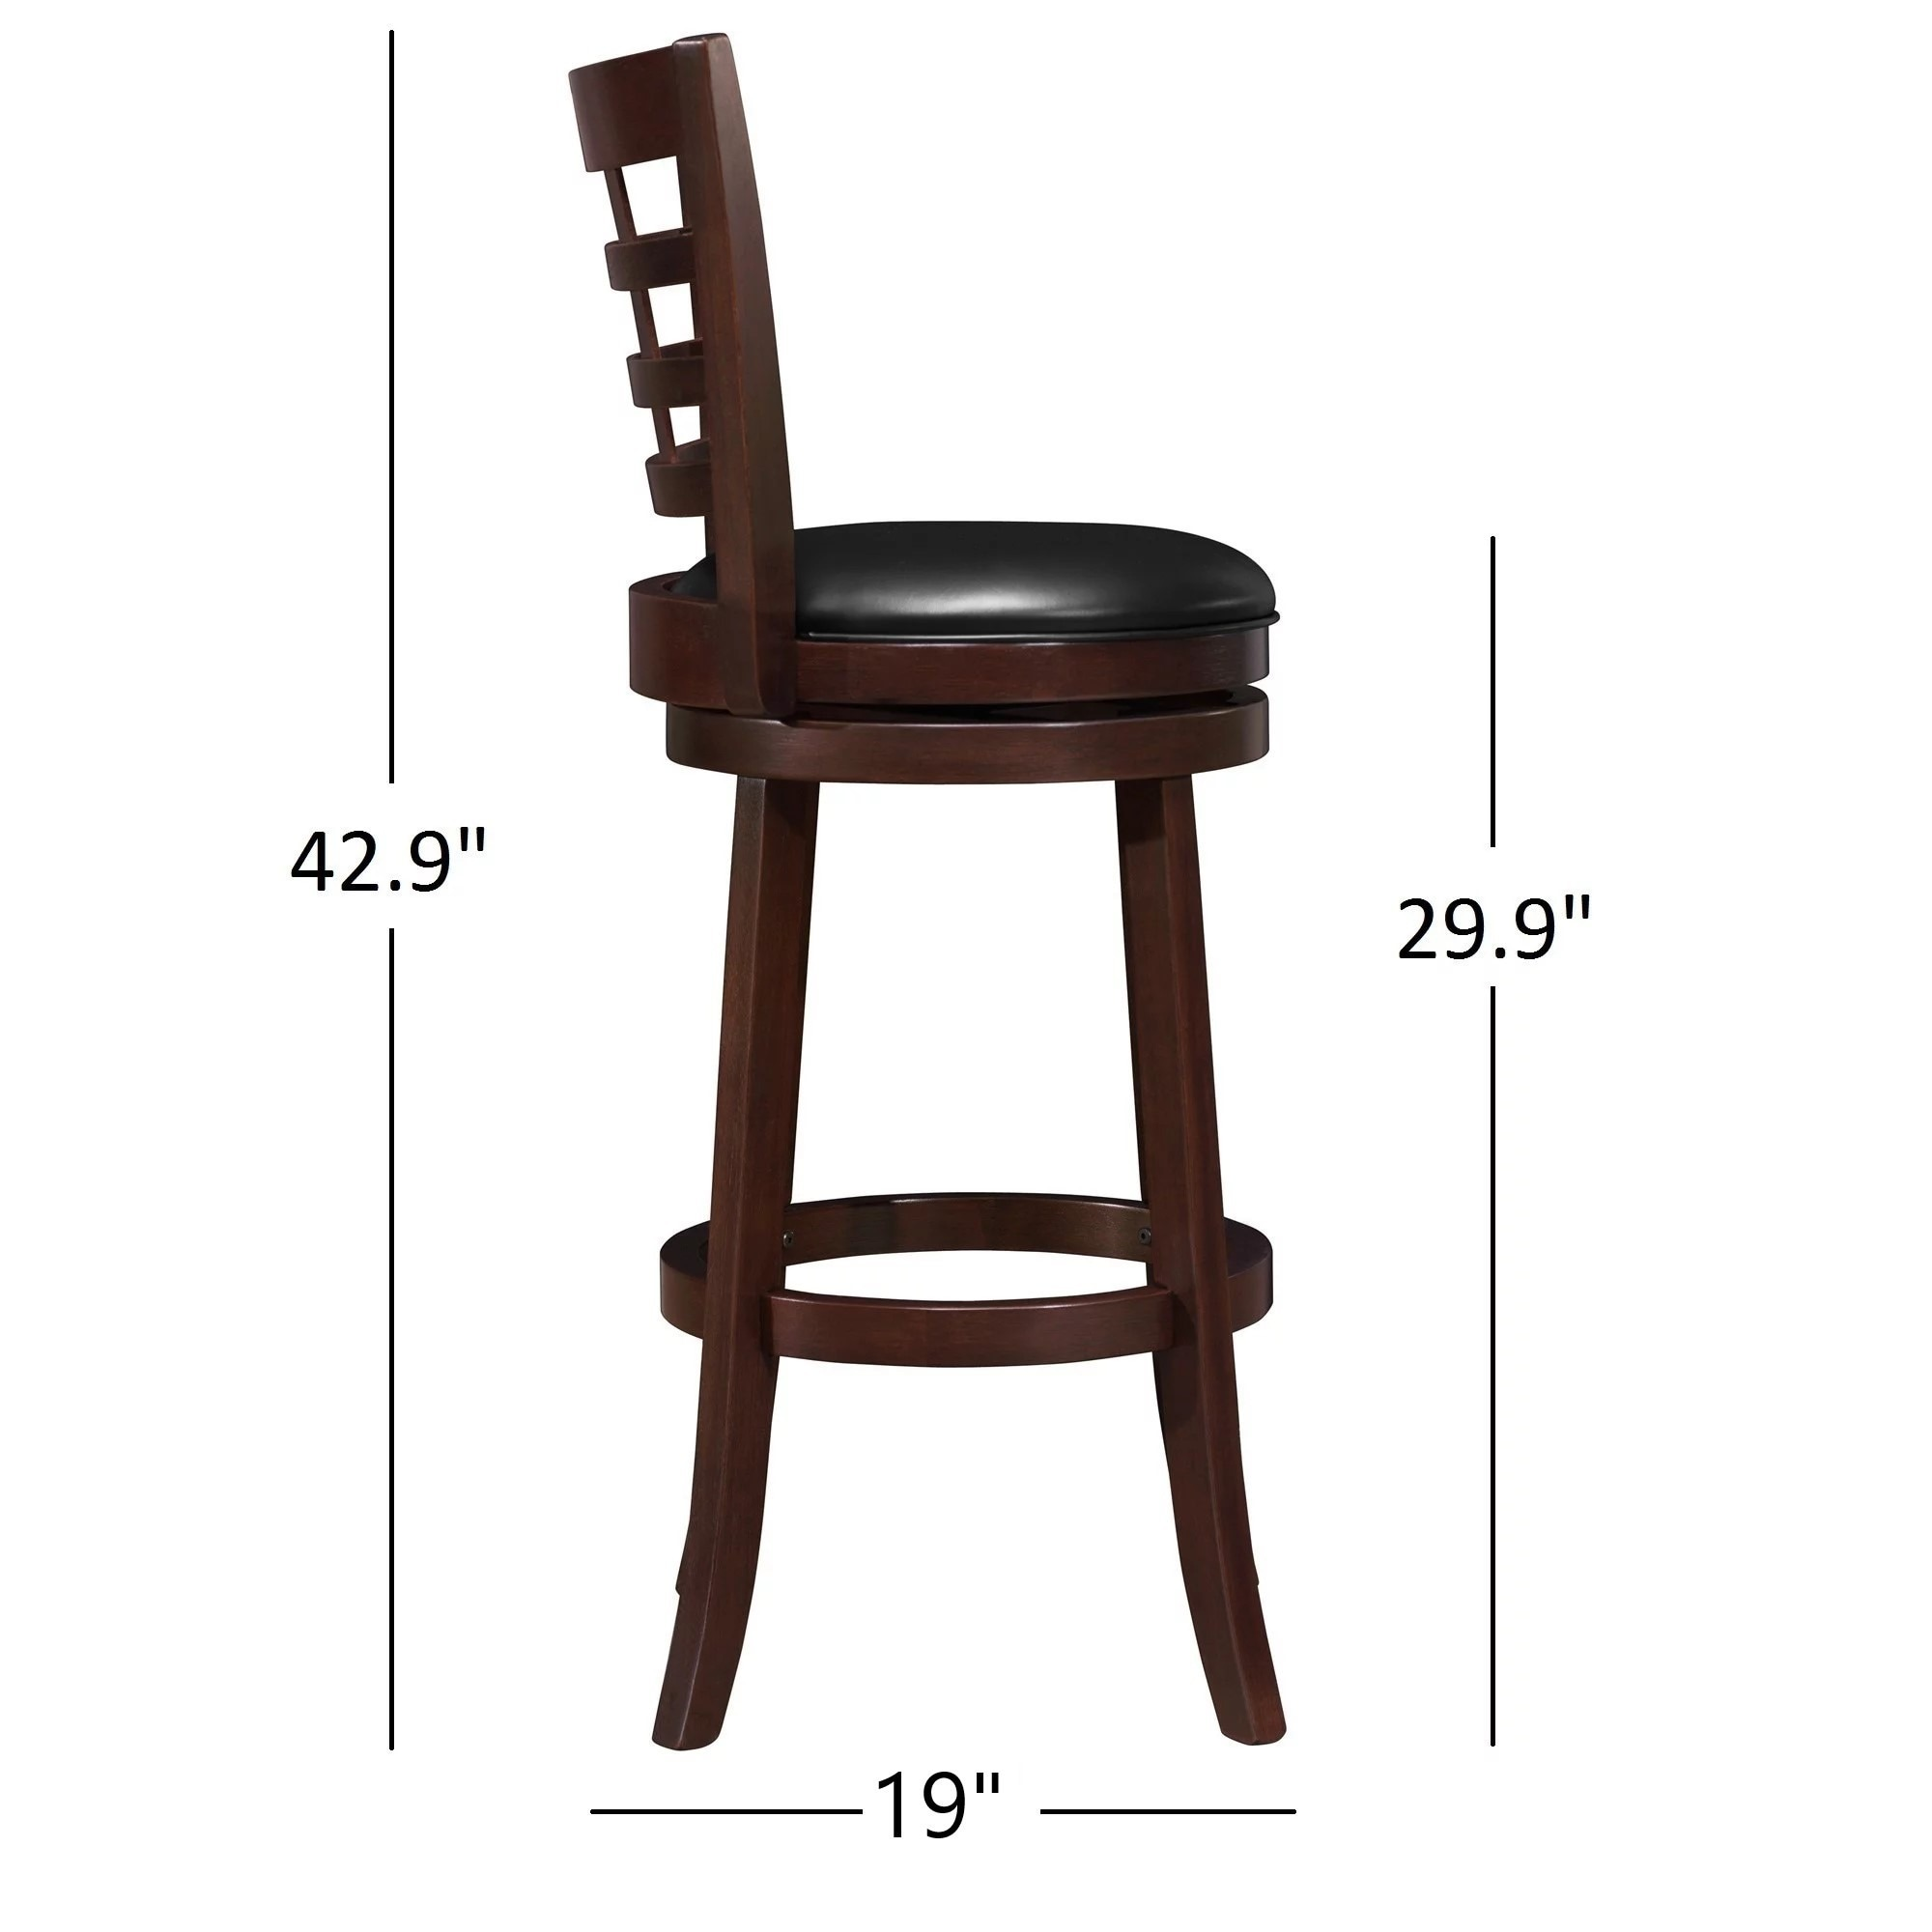 Verona Cherry Swivel 29 Inch High Back Barstool By Inspire Q Clic Free Shipping Today 4101671